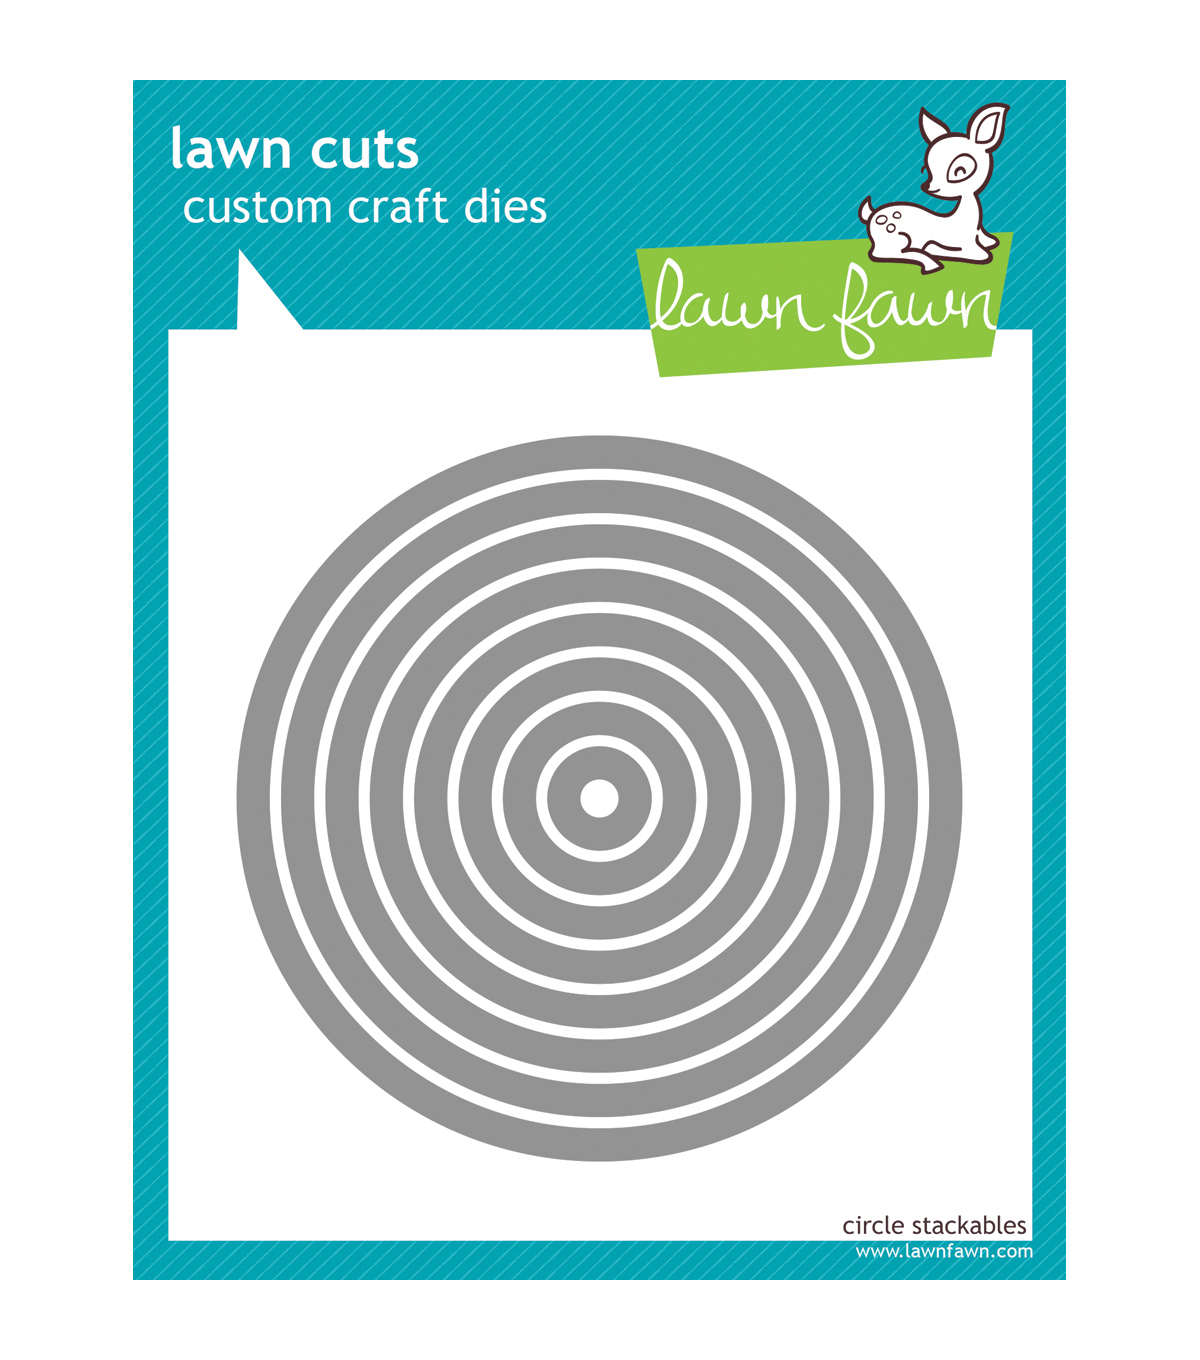 Lawn Fawn Lawn Cuts Custom Craft Die -Circle Stackables